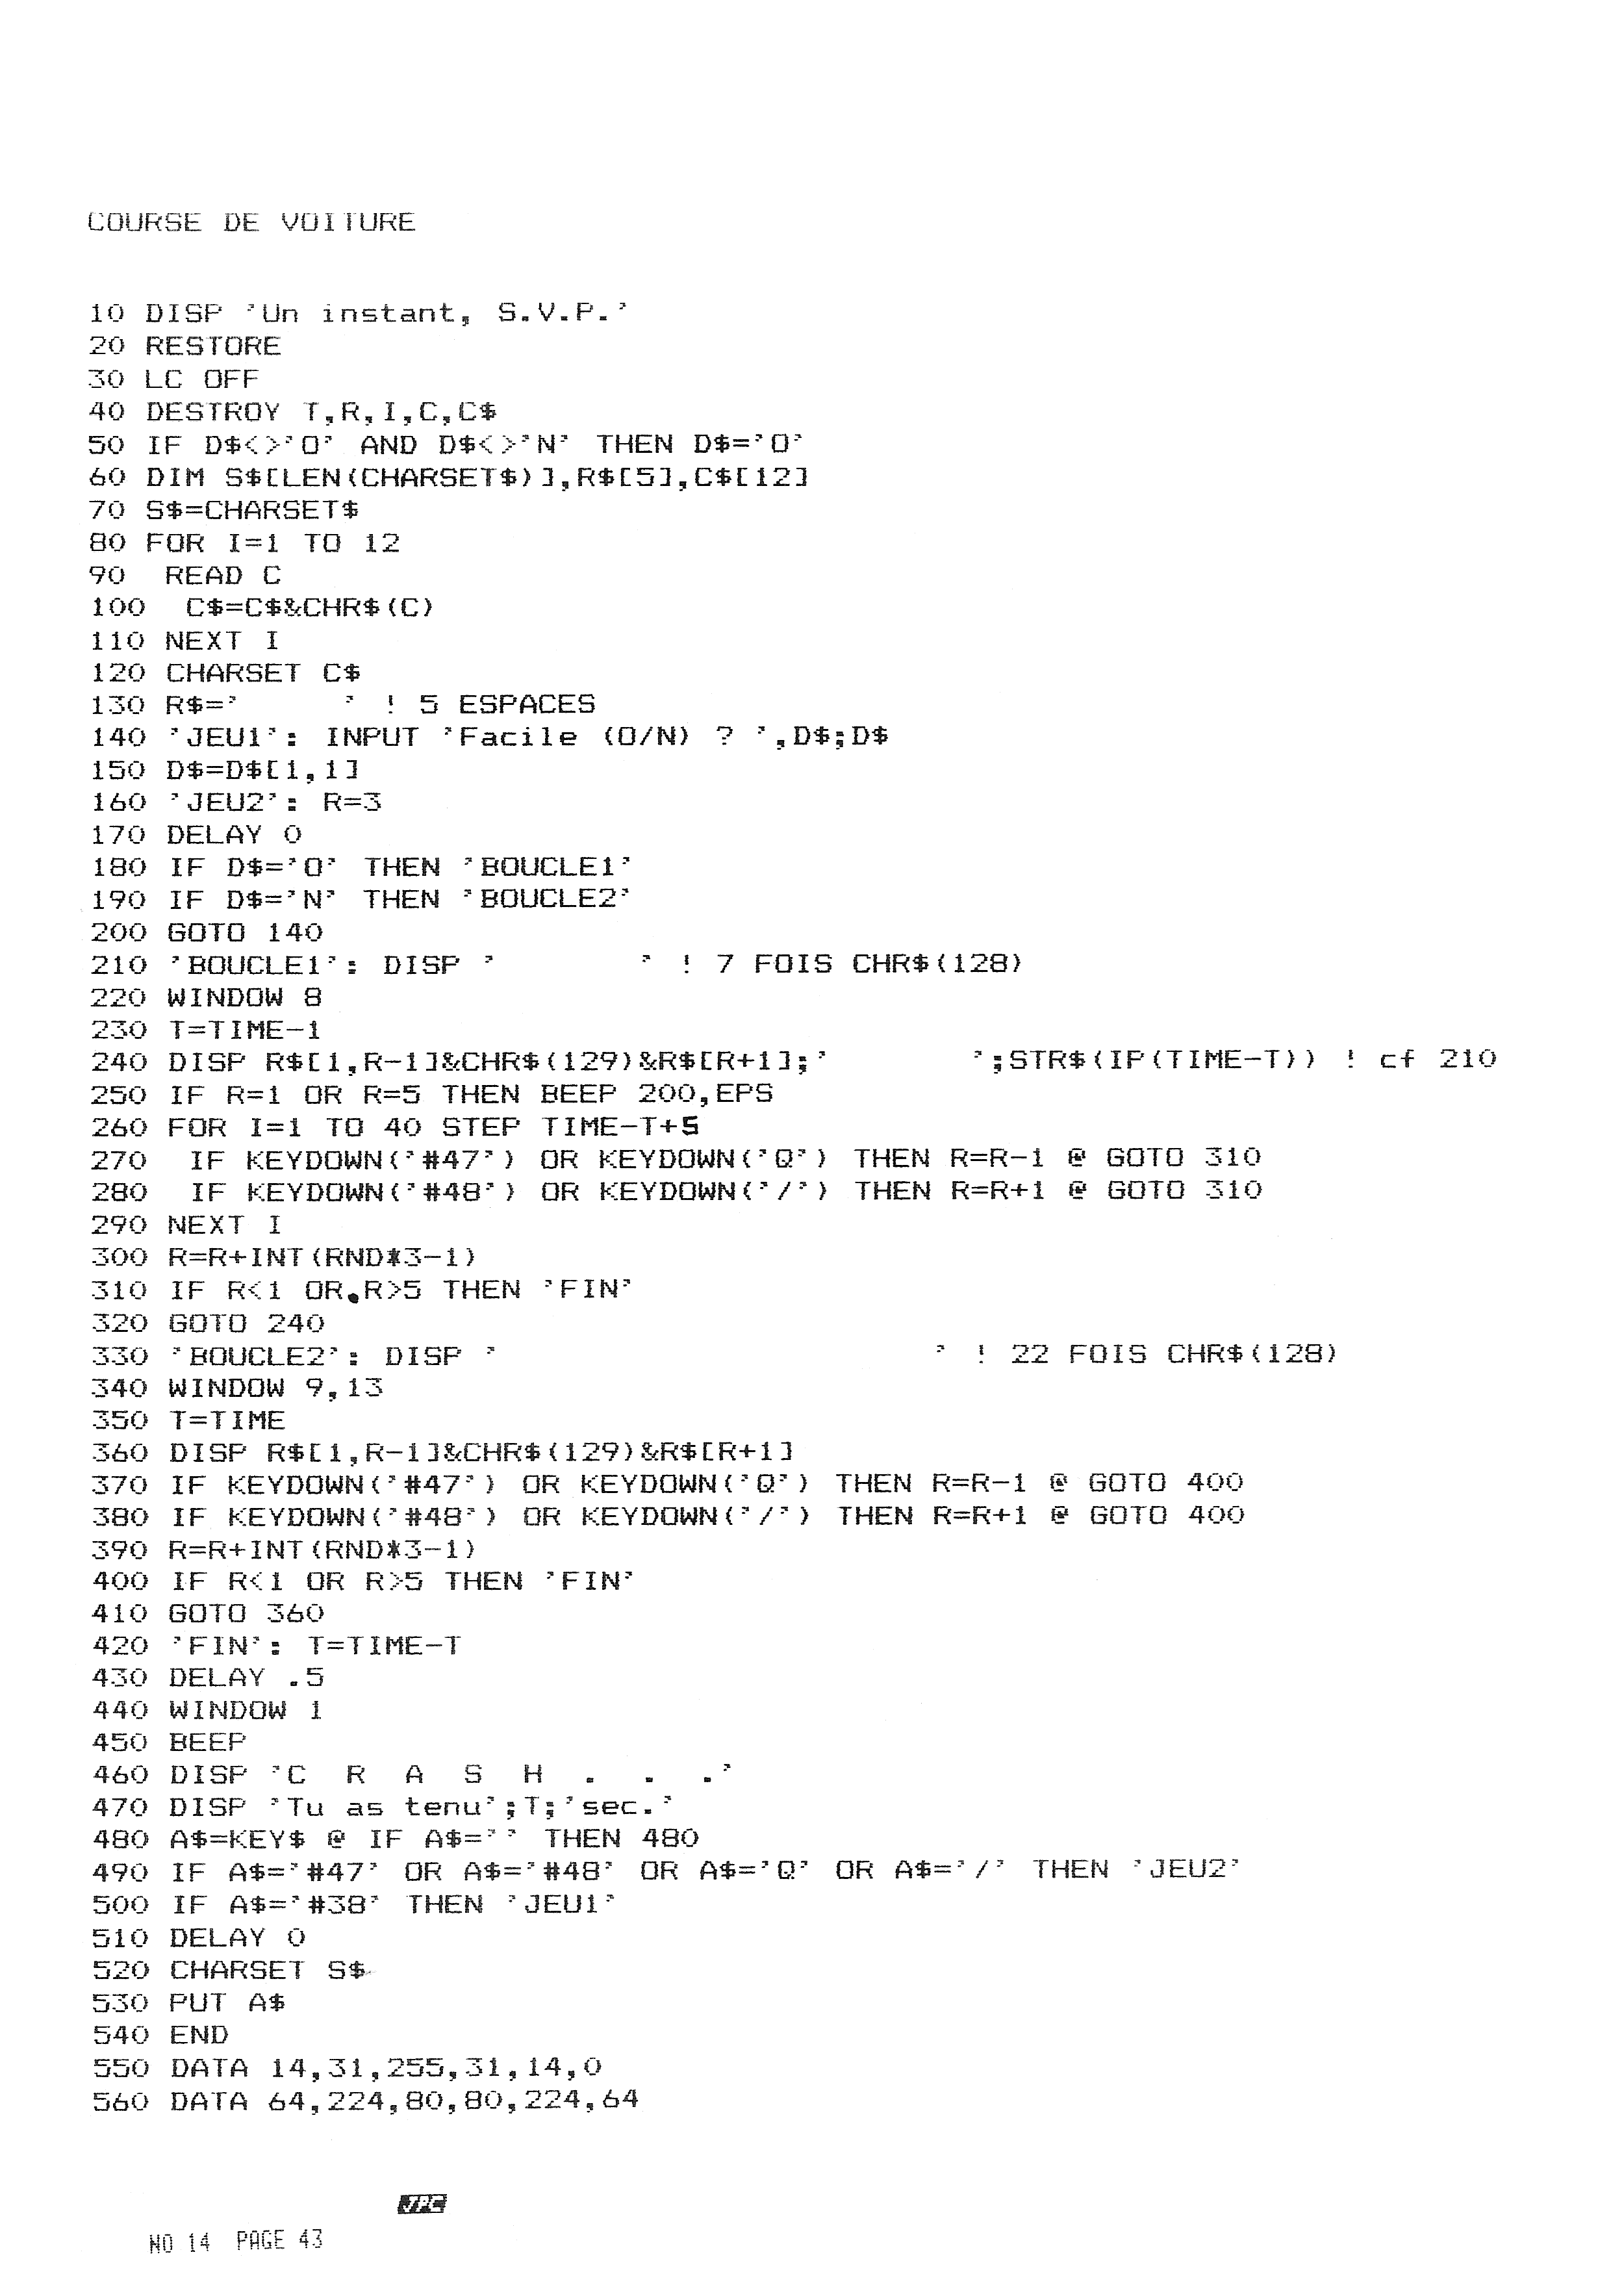 Jp-14-page-51-1000